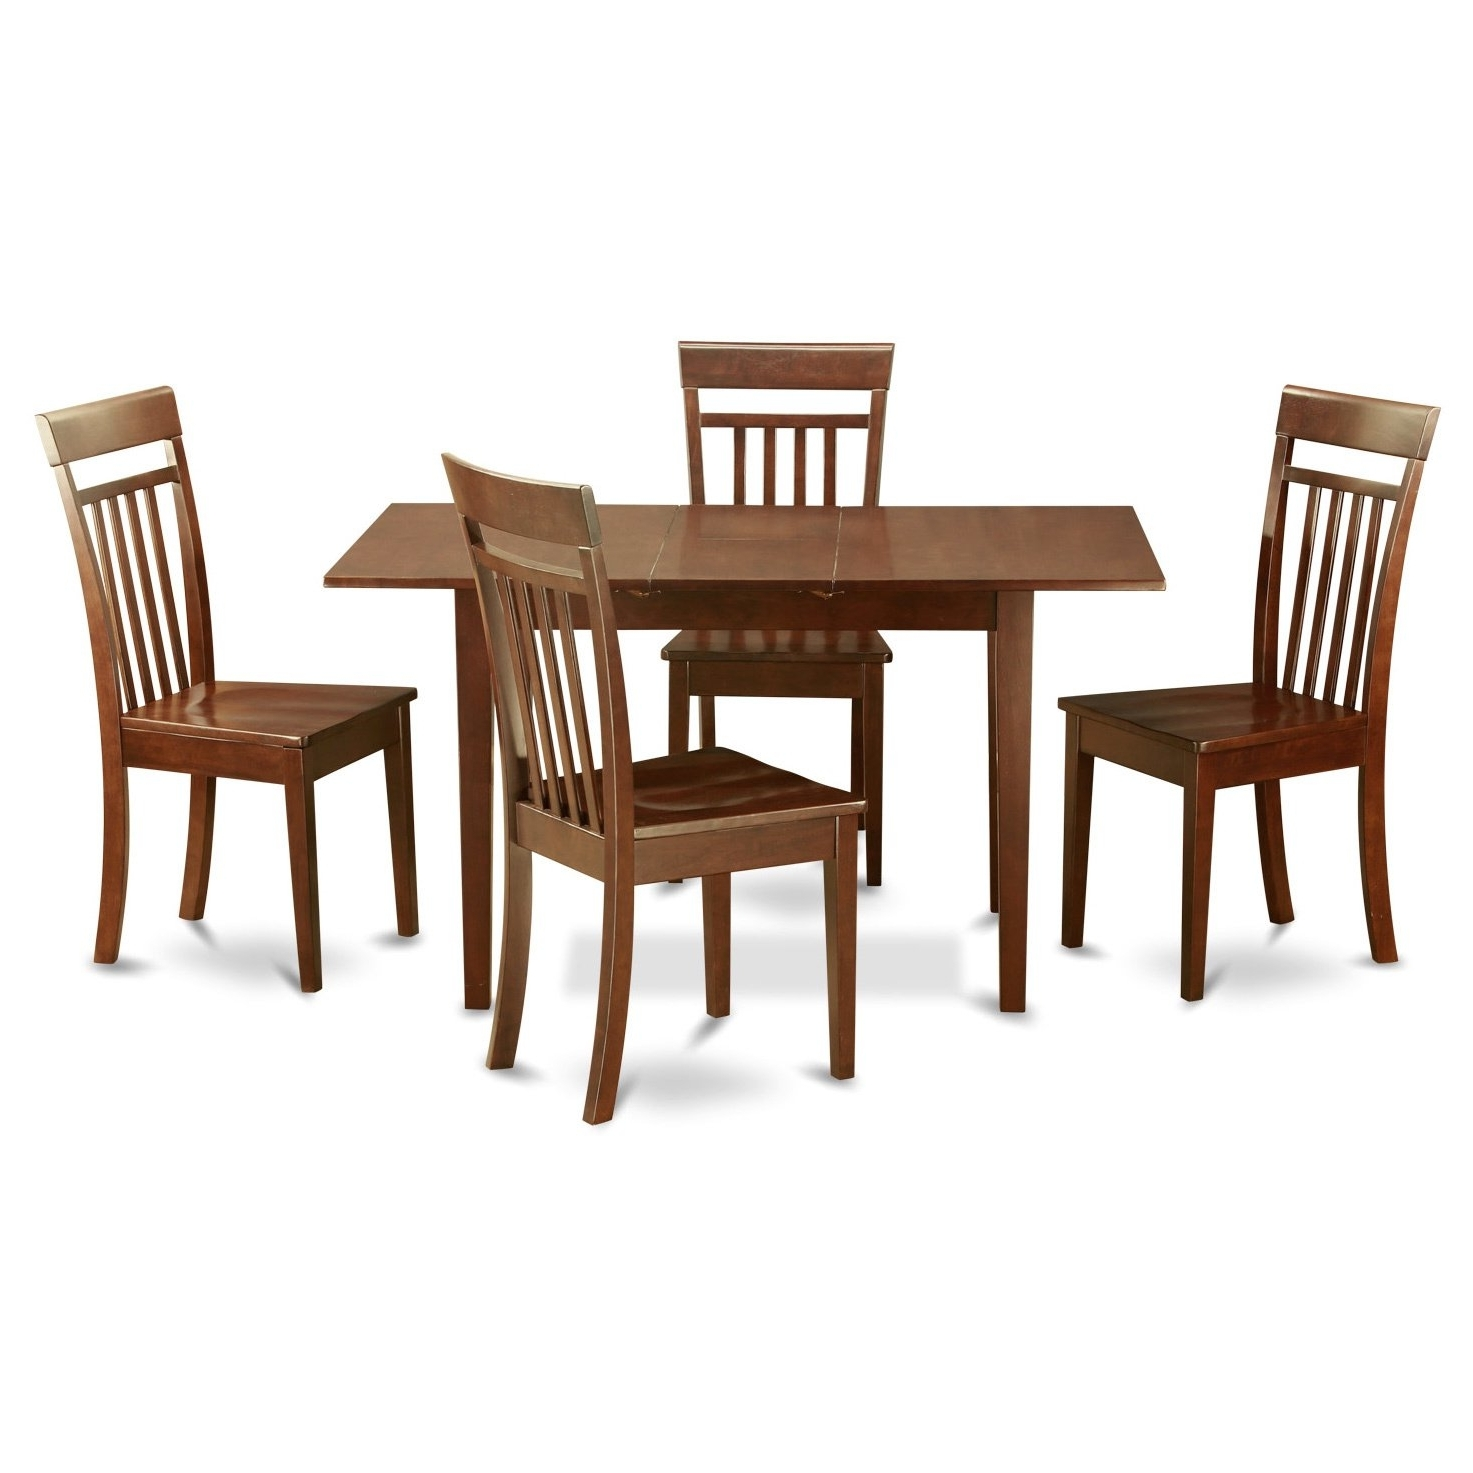 Mahogany Dining Tables And 4 Chairs Inside Recent Mahogany Dining Room Table And 4 Dining Room Chairs Chairs 5 Piece (Gallery 18 of 25)